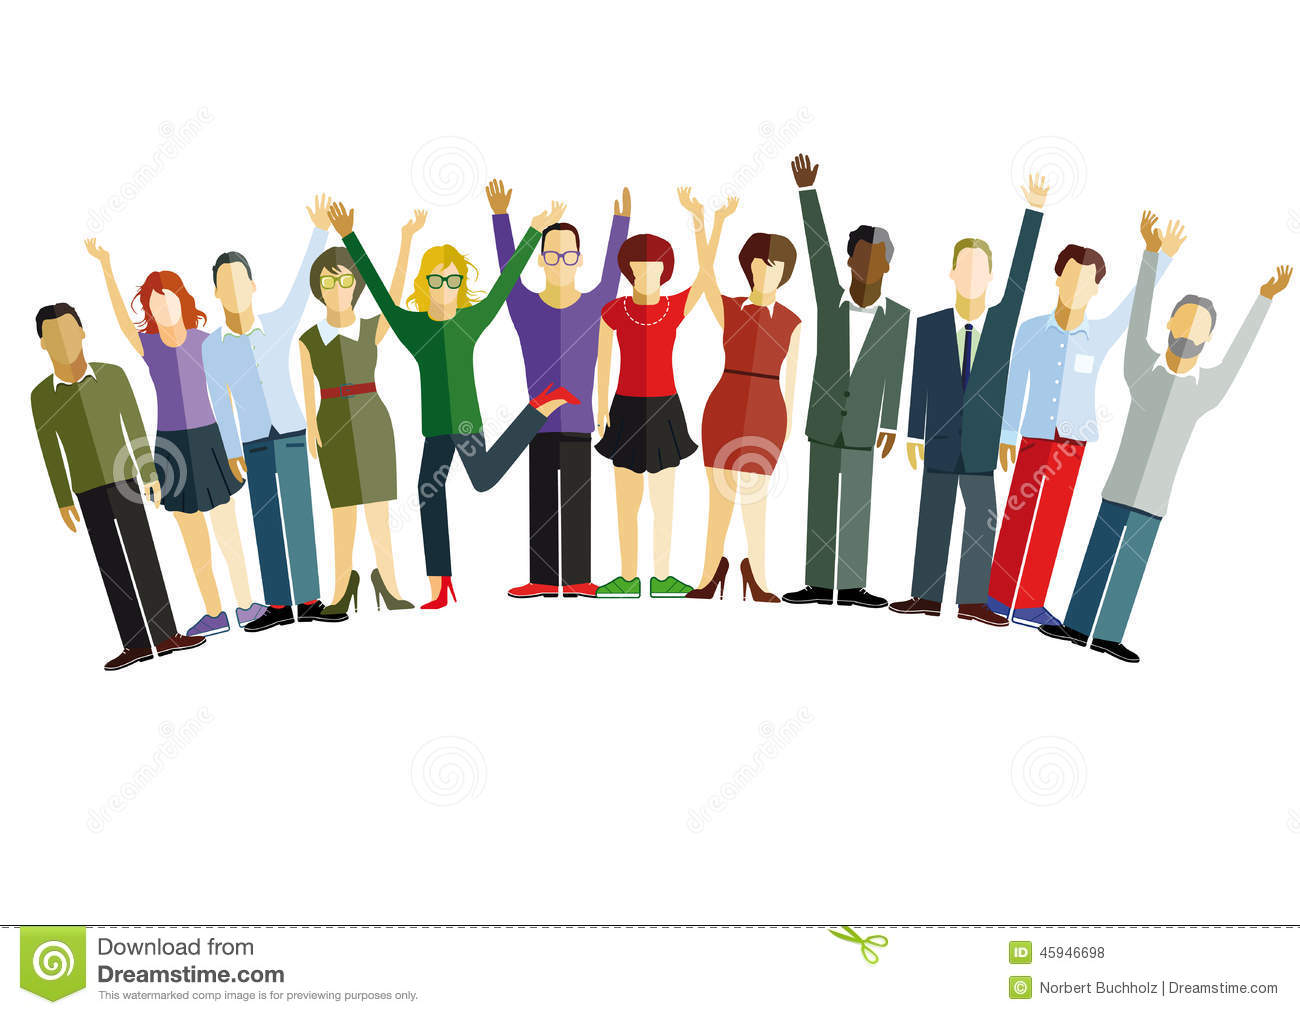 happy-people-graphic-line-waving-cheering-white-background-45946698.jpg